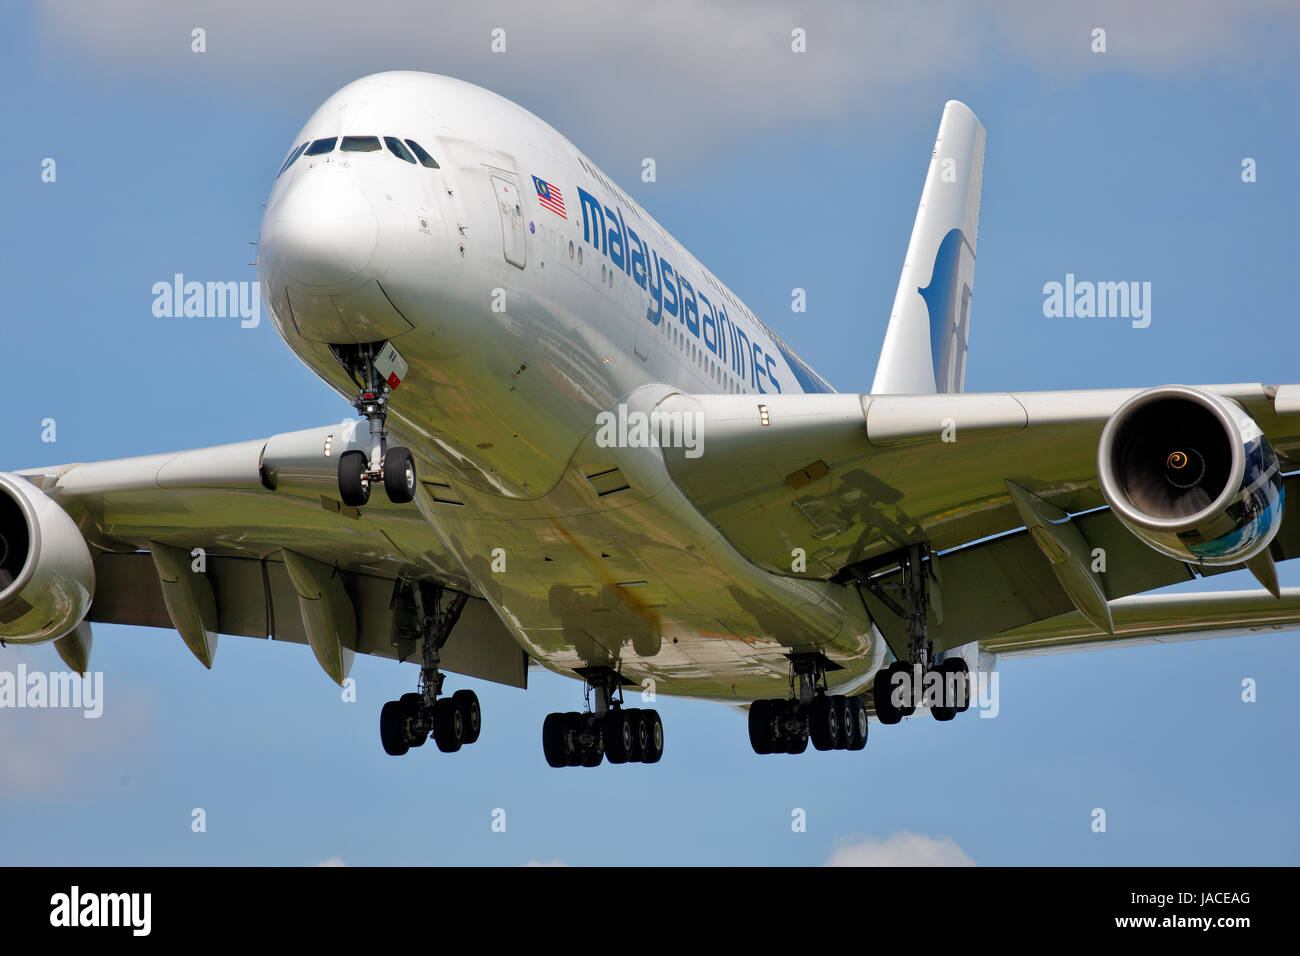 9M-MNA Malaysia Airlines Airbus A380-800 cn-078 on final approach to runway 27L at London Heathrow airport. - Stock Image